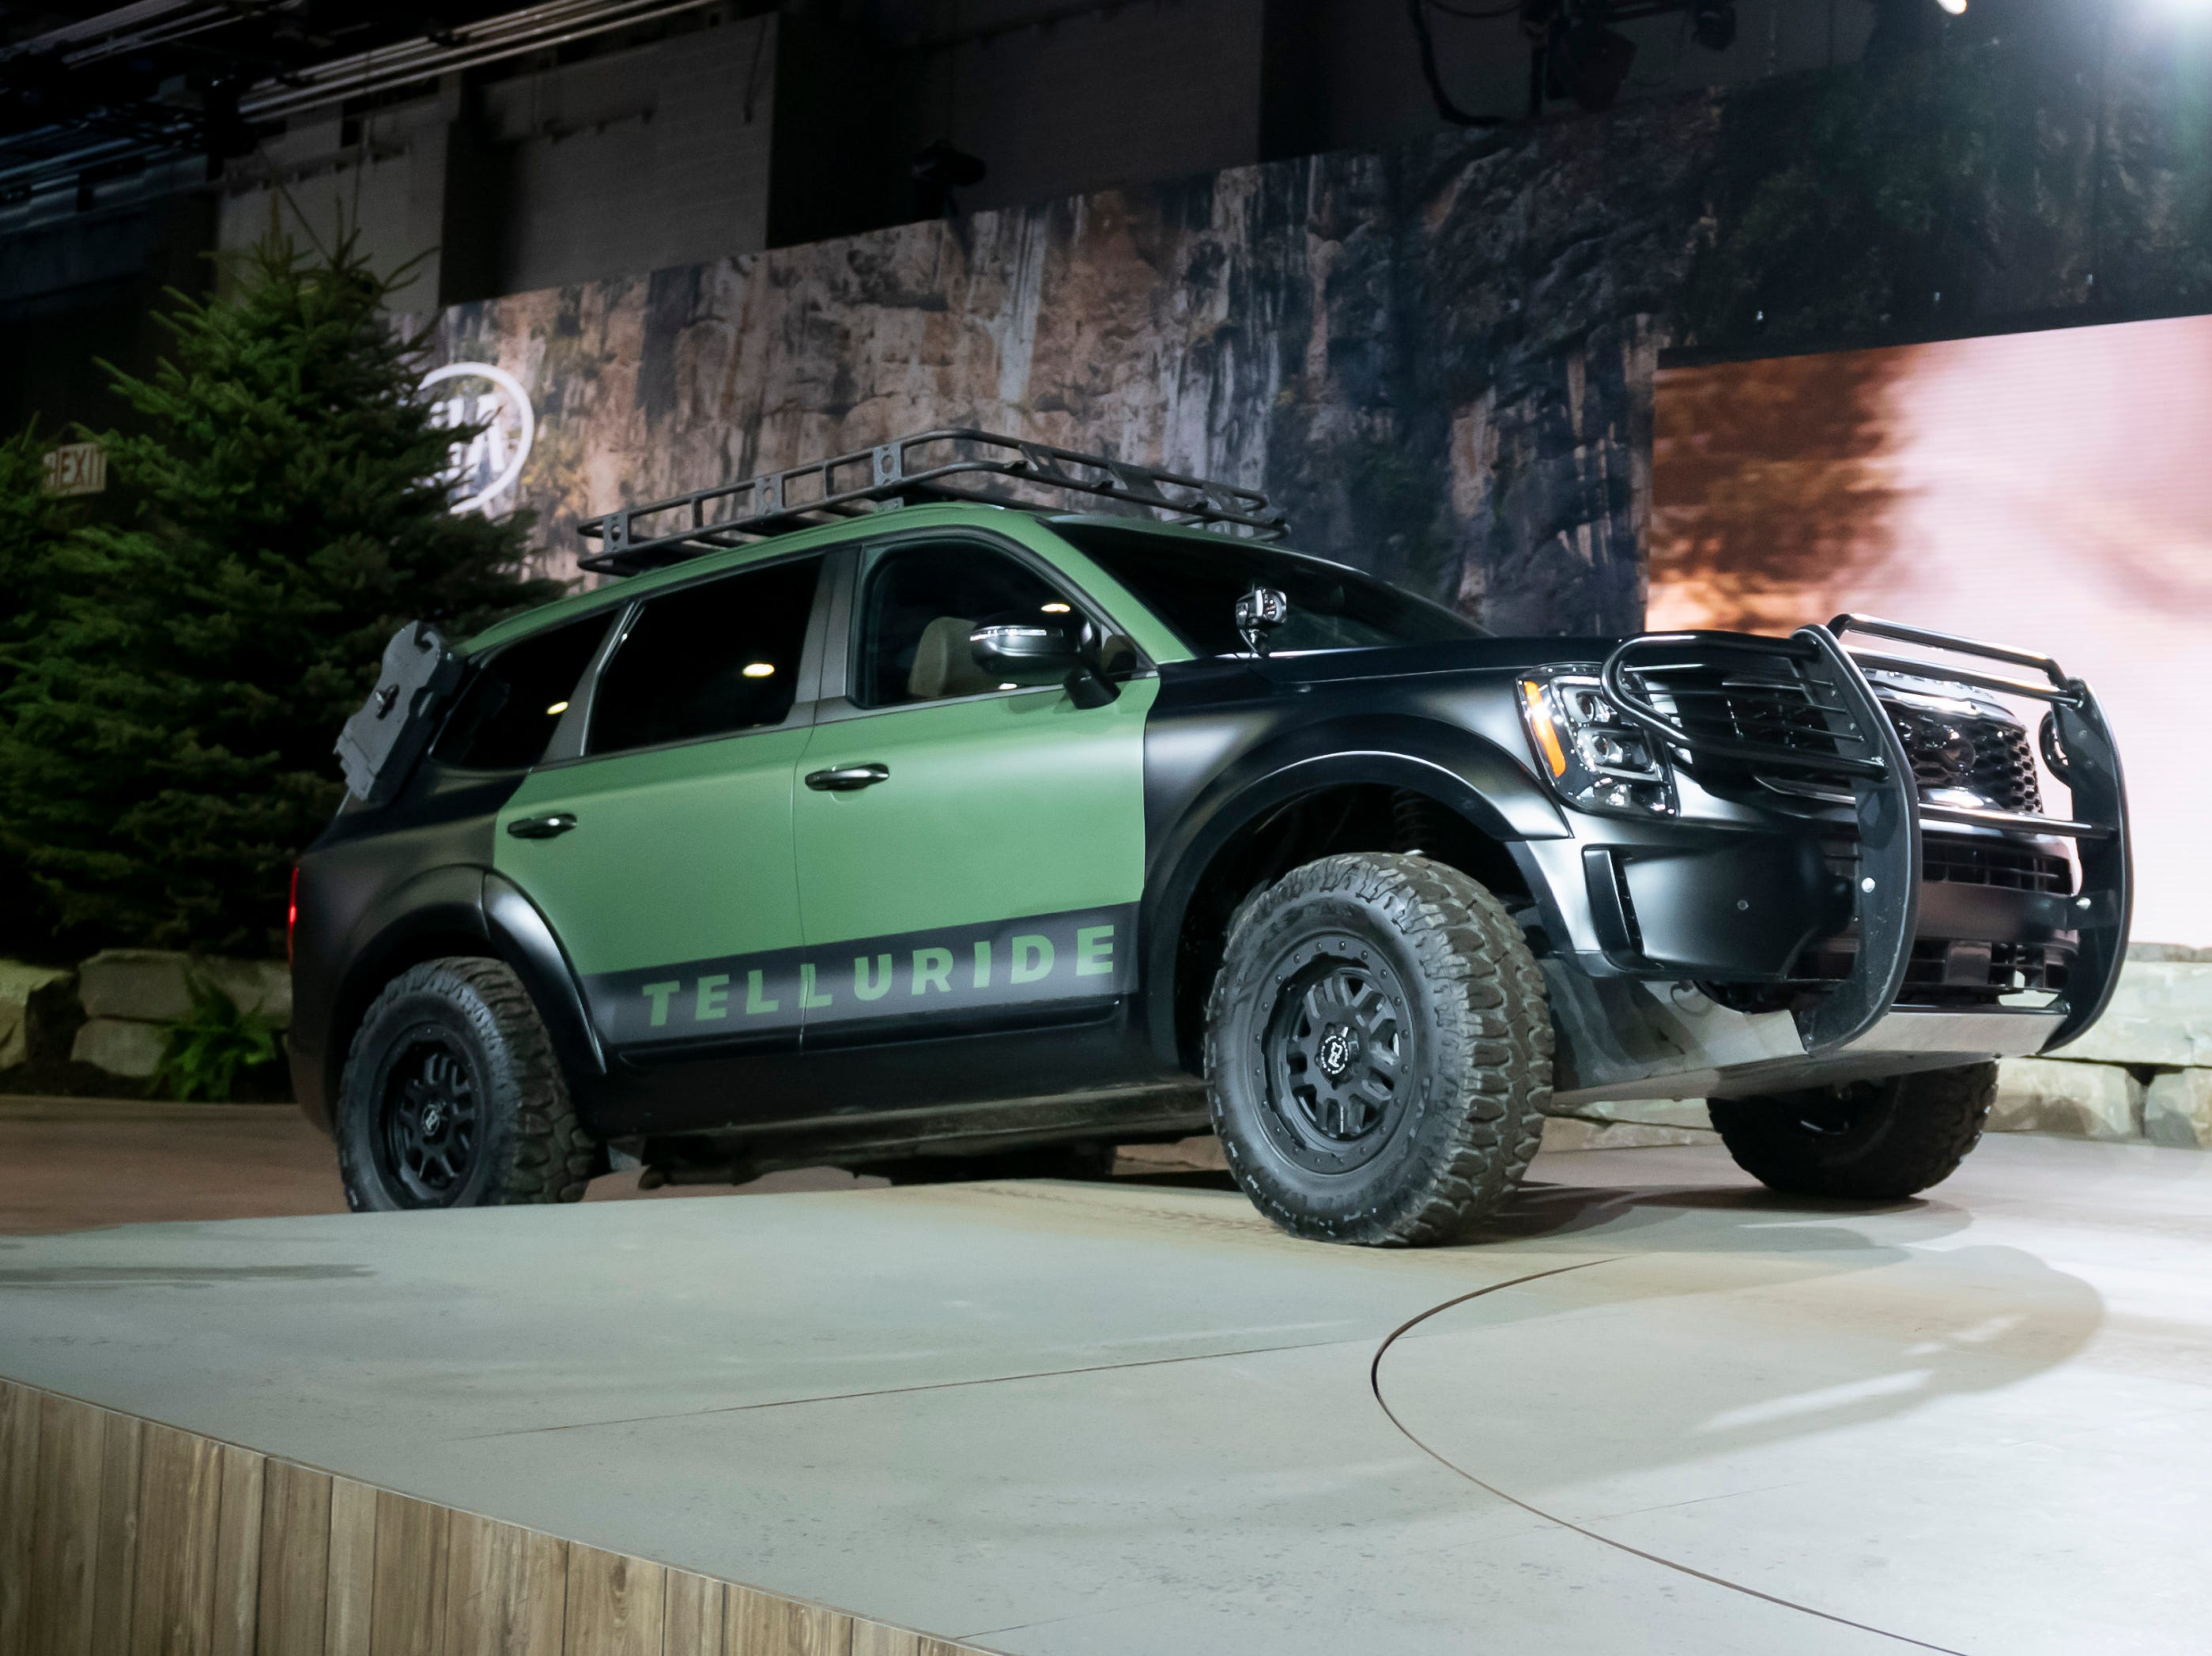 The 2020 Kia Telluride is driven on an off-road course during its introduction.